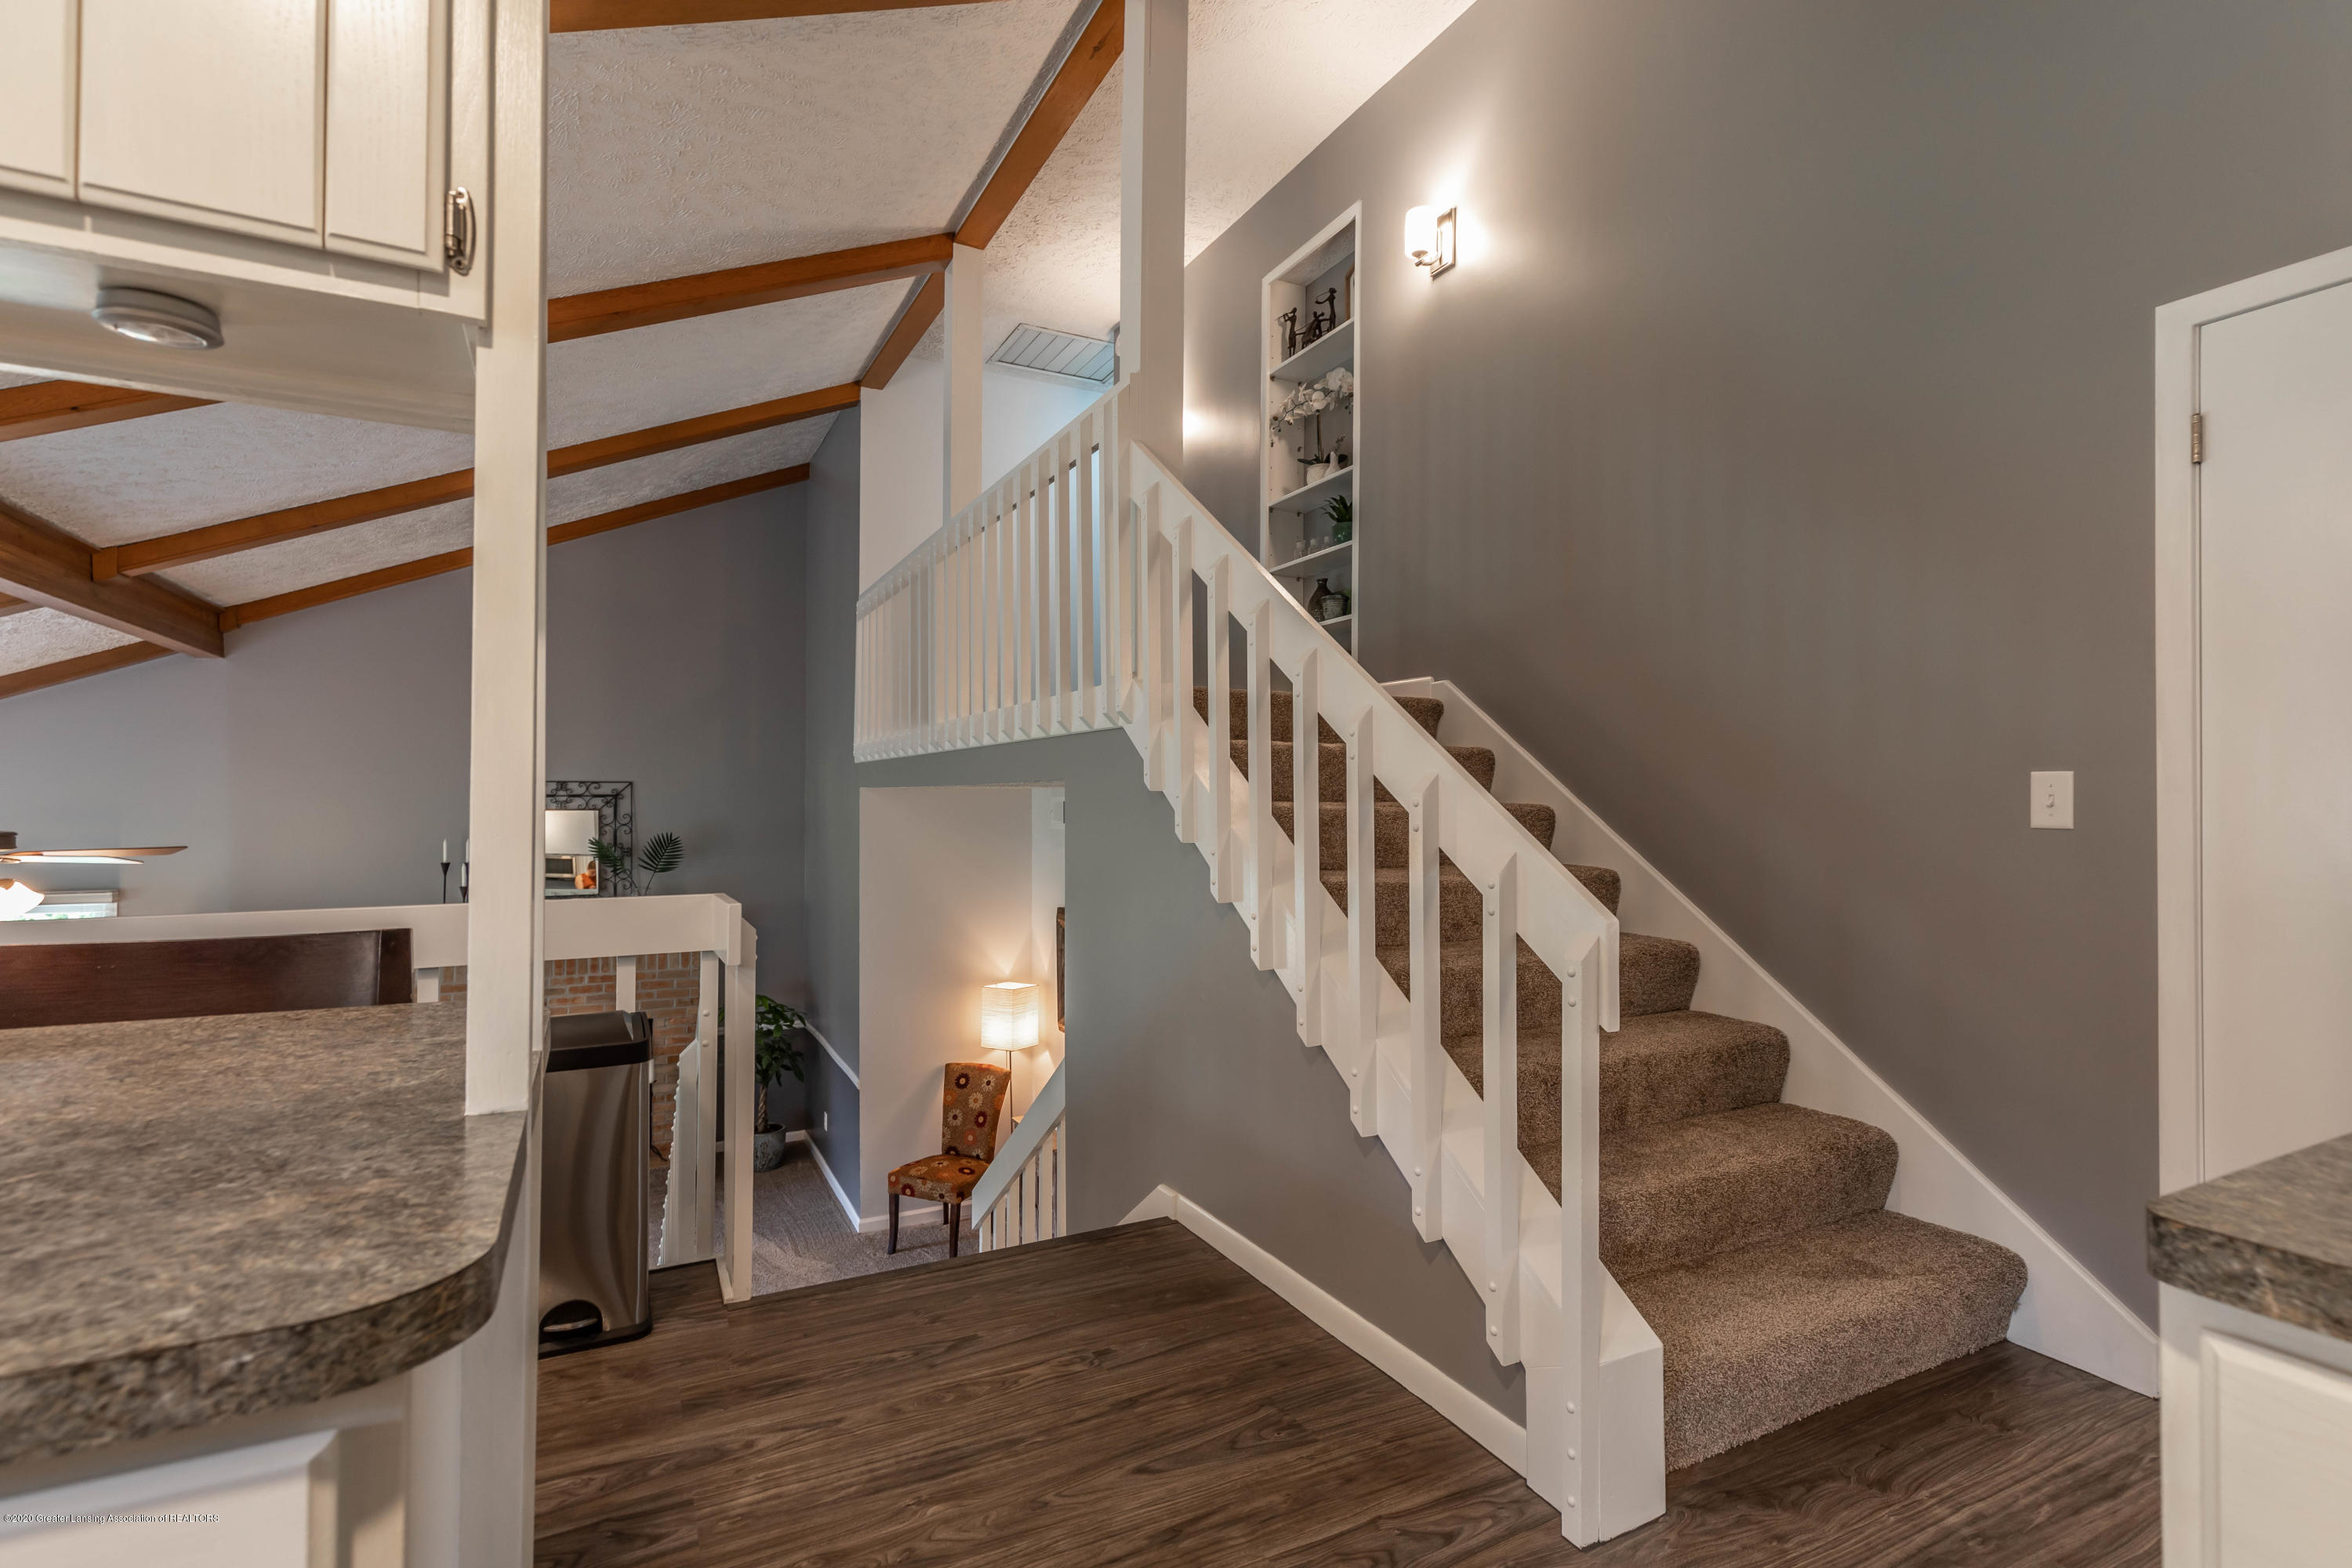 13532 Turner Rd - Stairs to bedrooms - 13